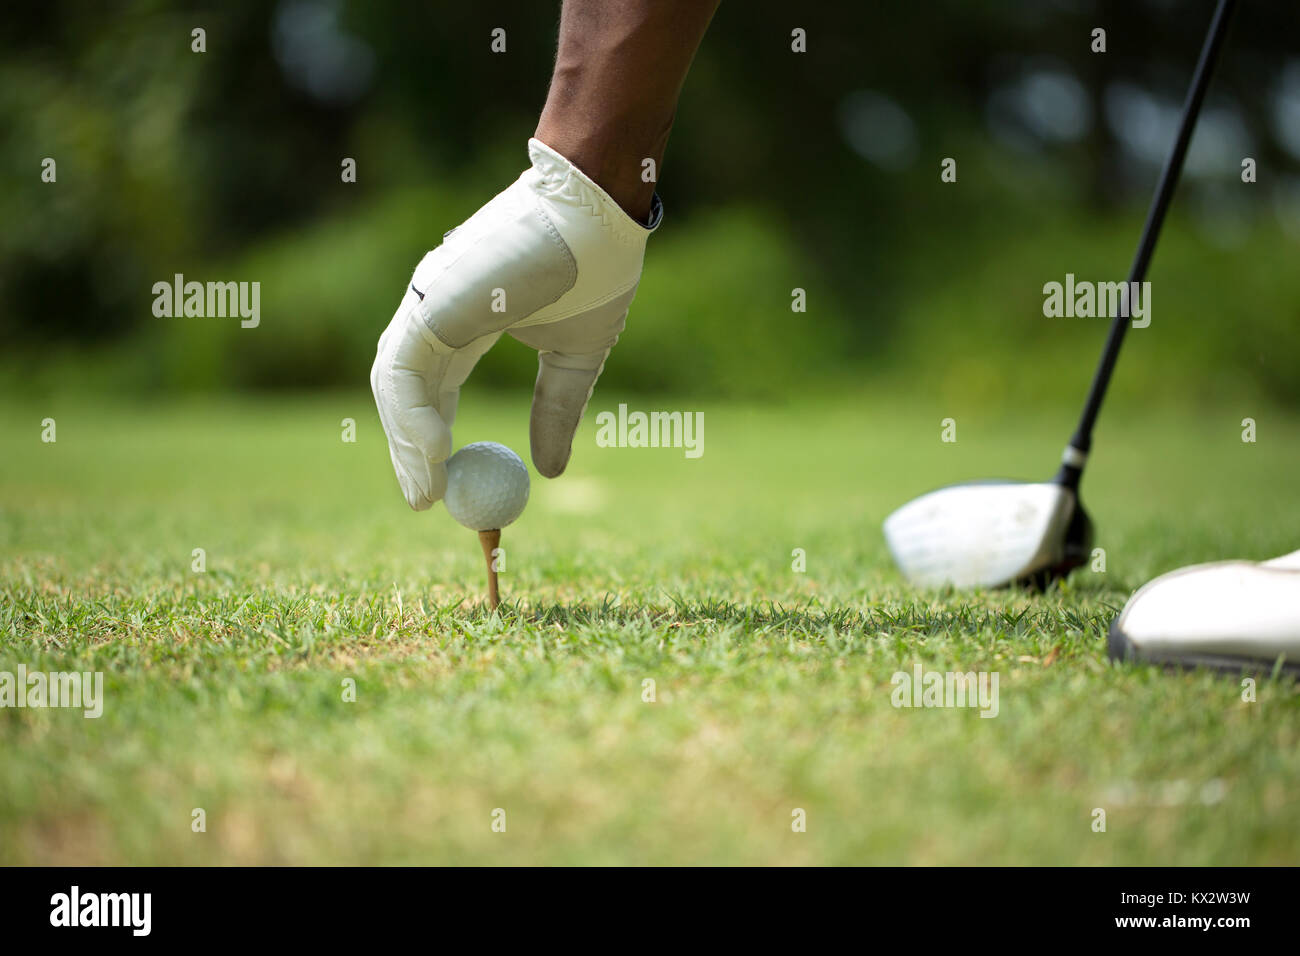 African American man playing golf. - Stock Image